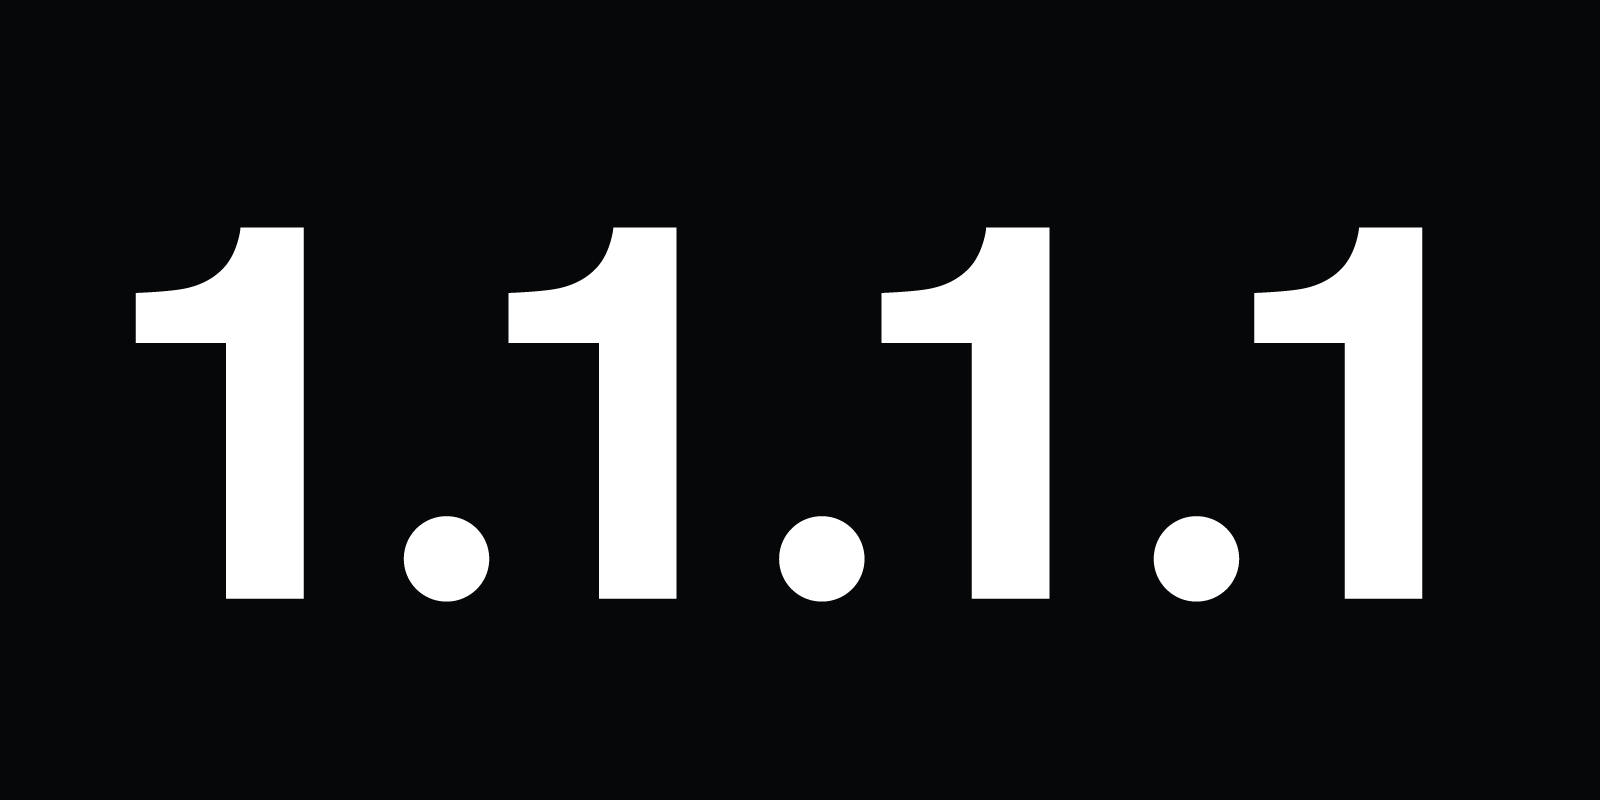 Introducing DNS Resolver, 1.1.1.1 (not a joke)